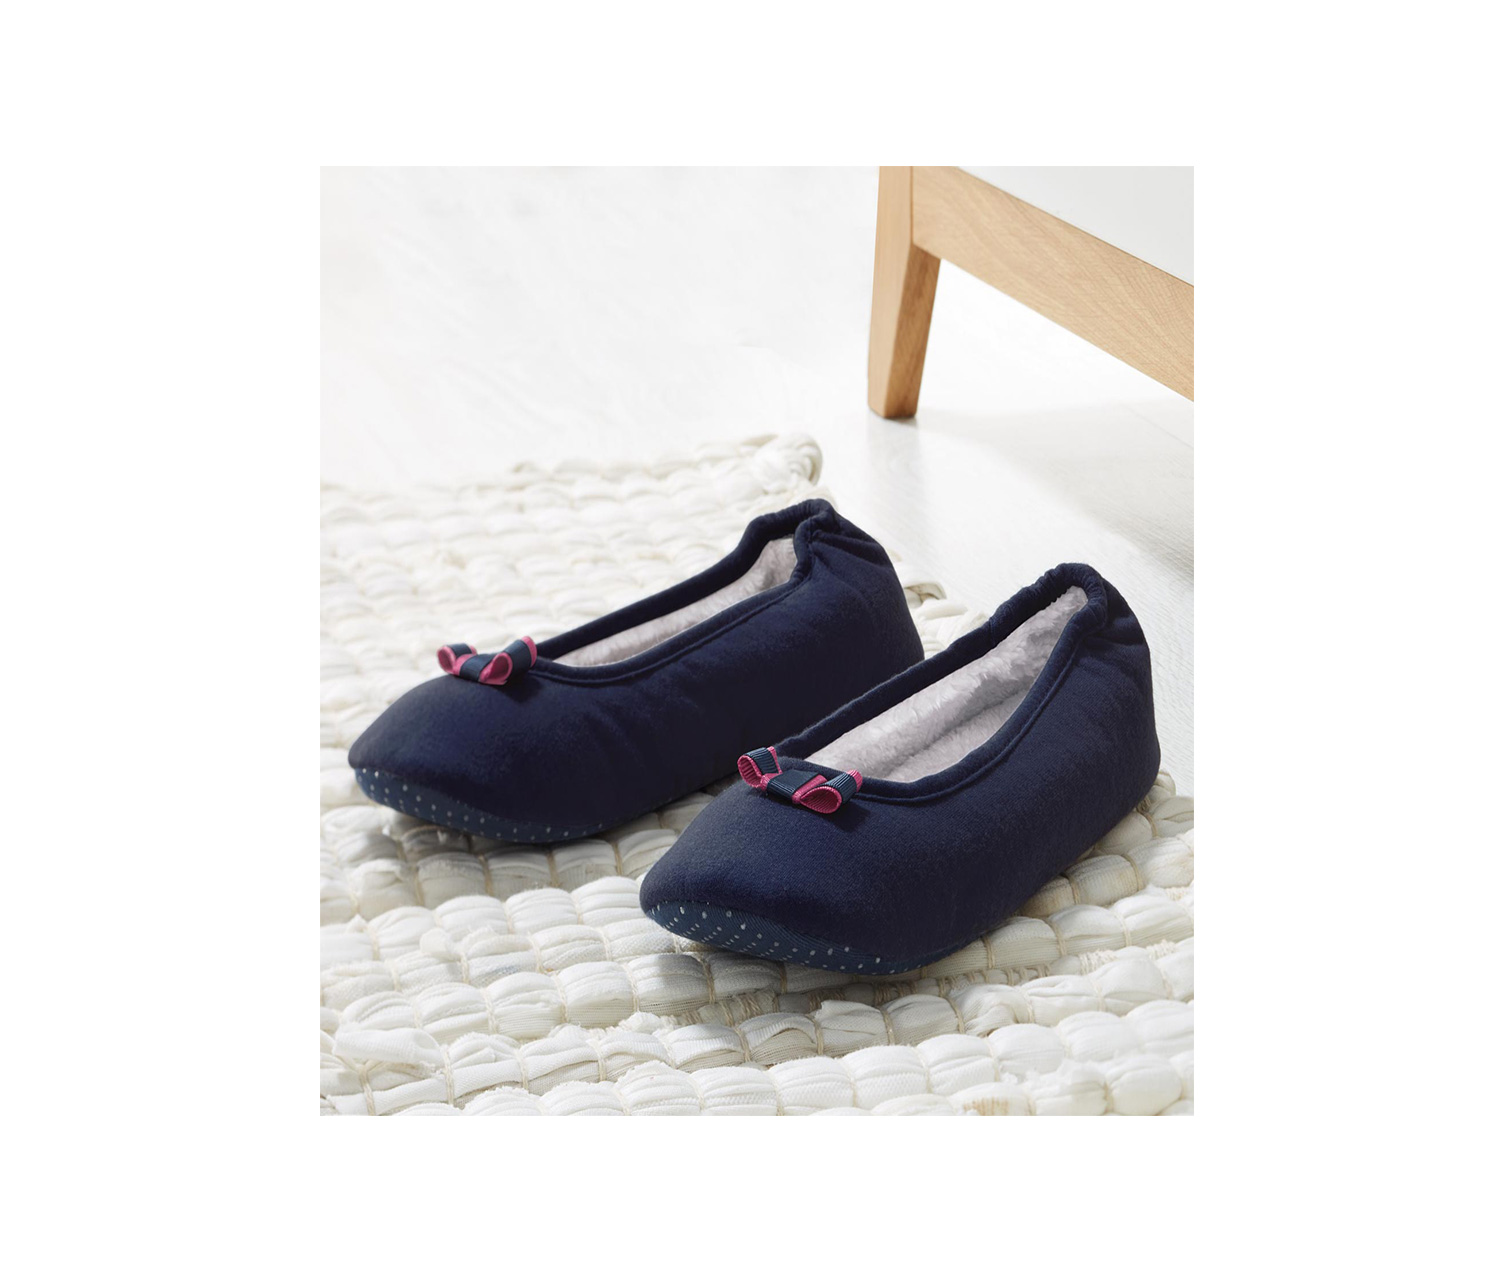 Women's Ballerina Slippers, Navy Blue